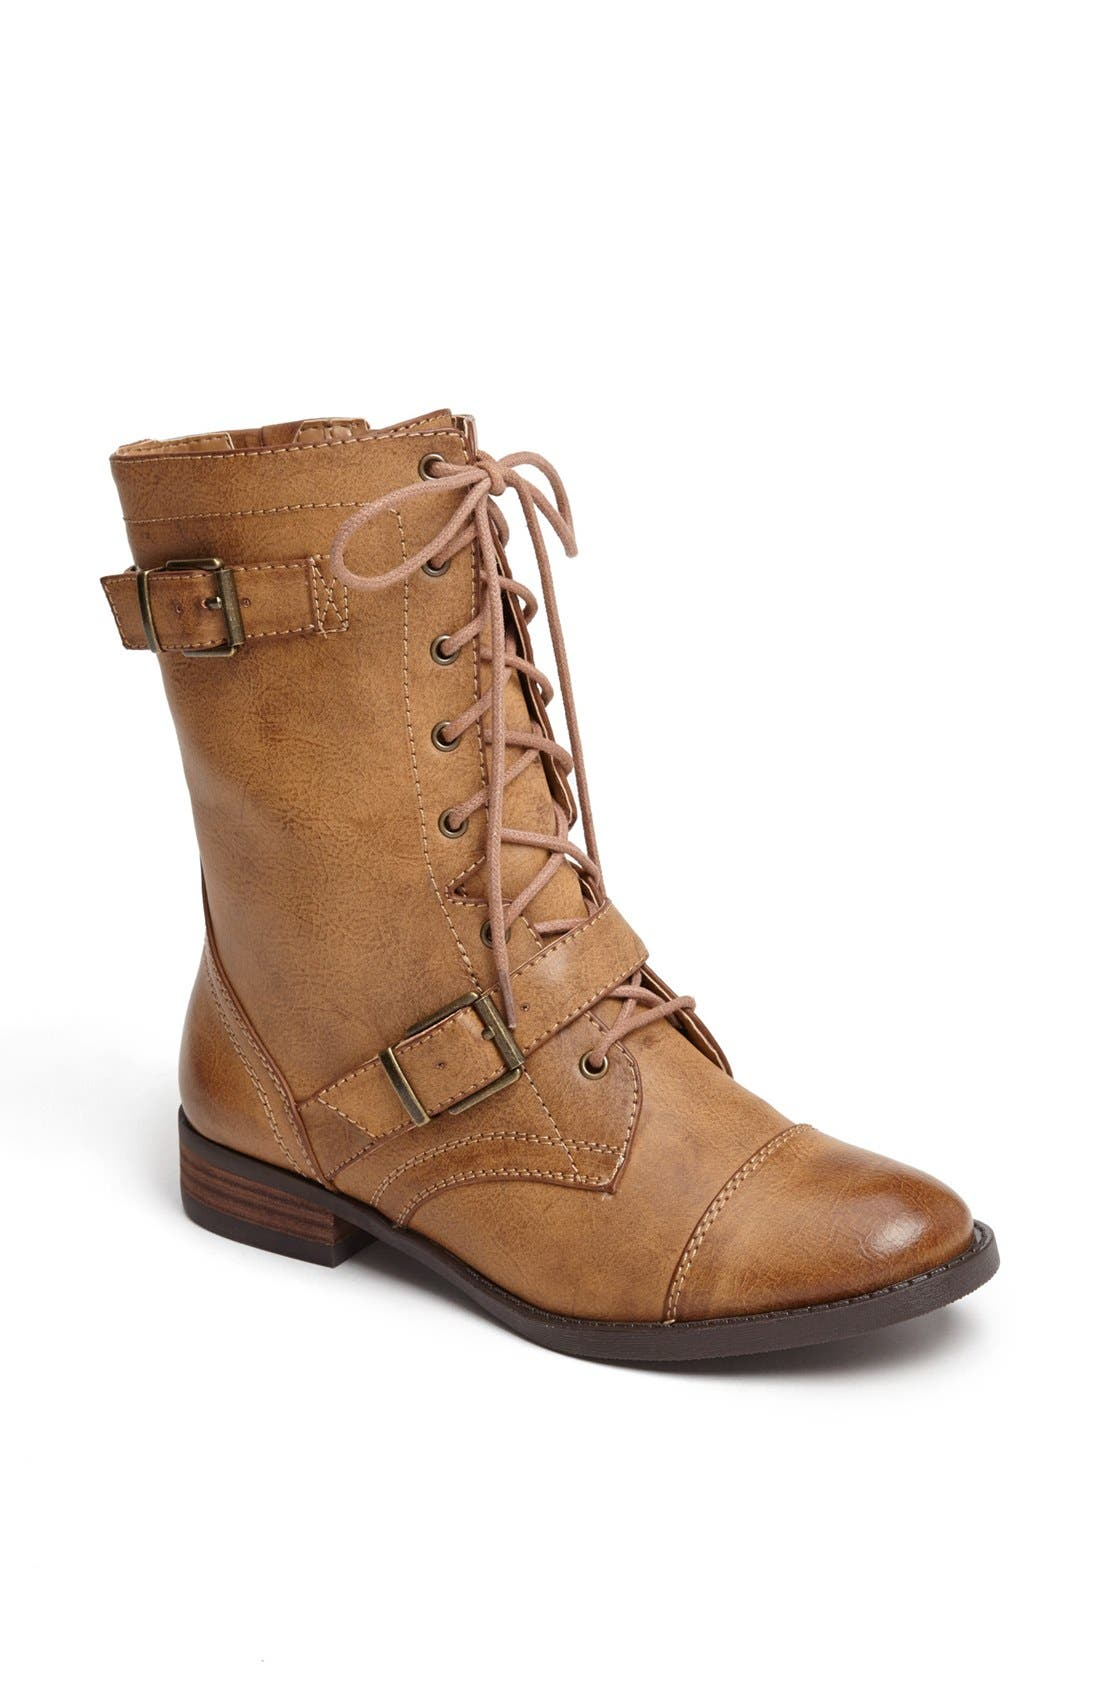 Main Image - Sole Society 'Nessie' Lace-Up Bootie